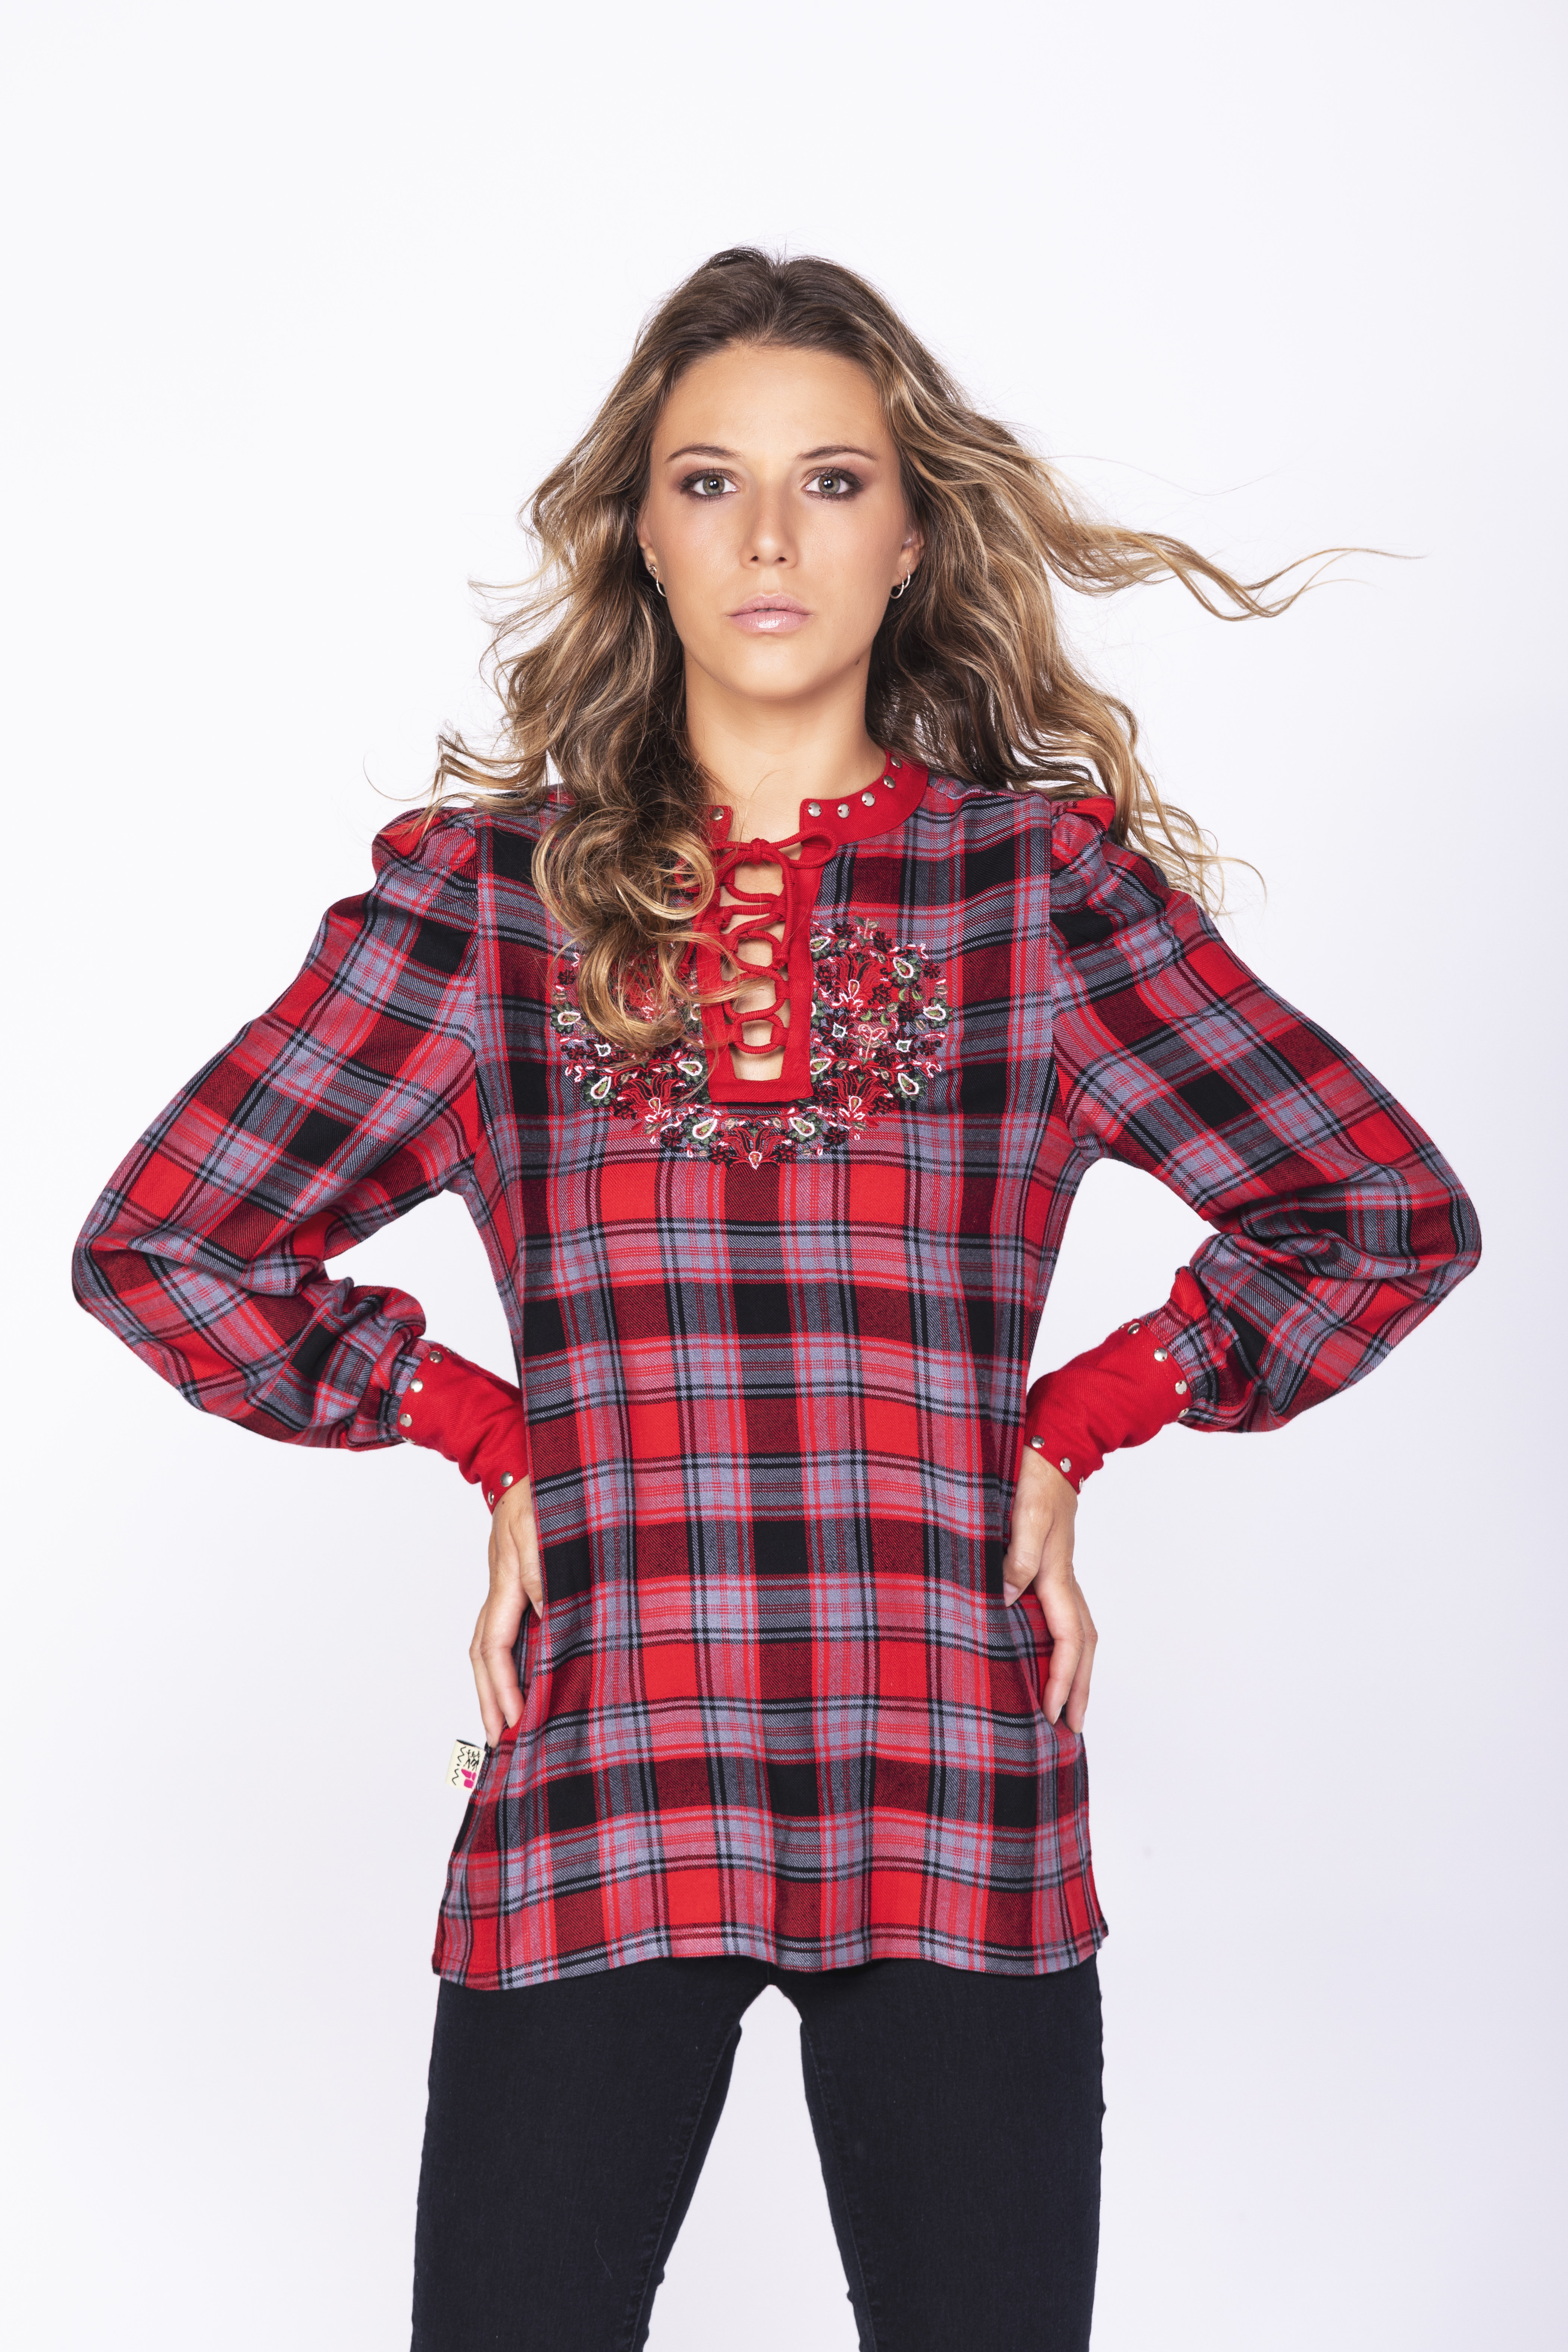 Savage Culture: Rose Red Plaid Criss Cross Tunic Kalingrado SOLD OUT SAVAGE_35062